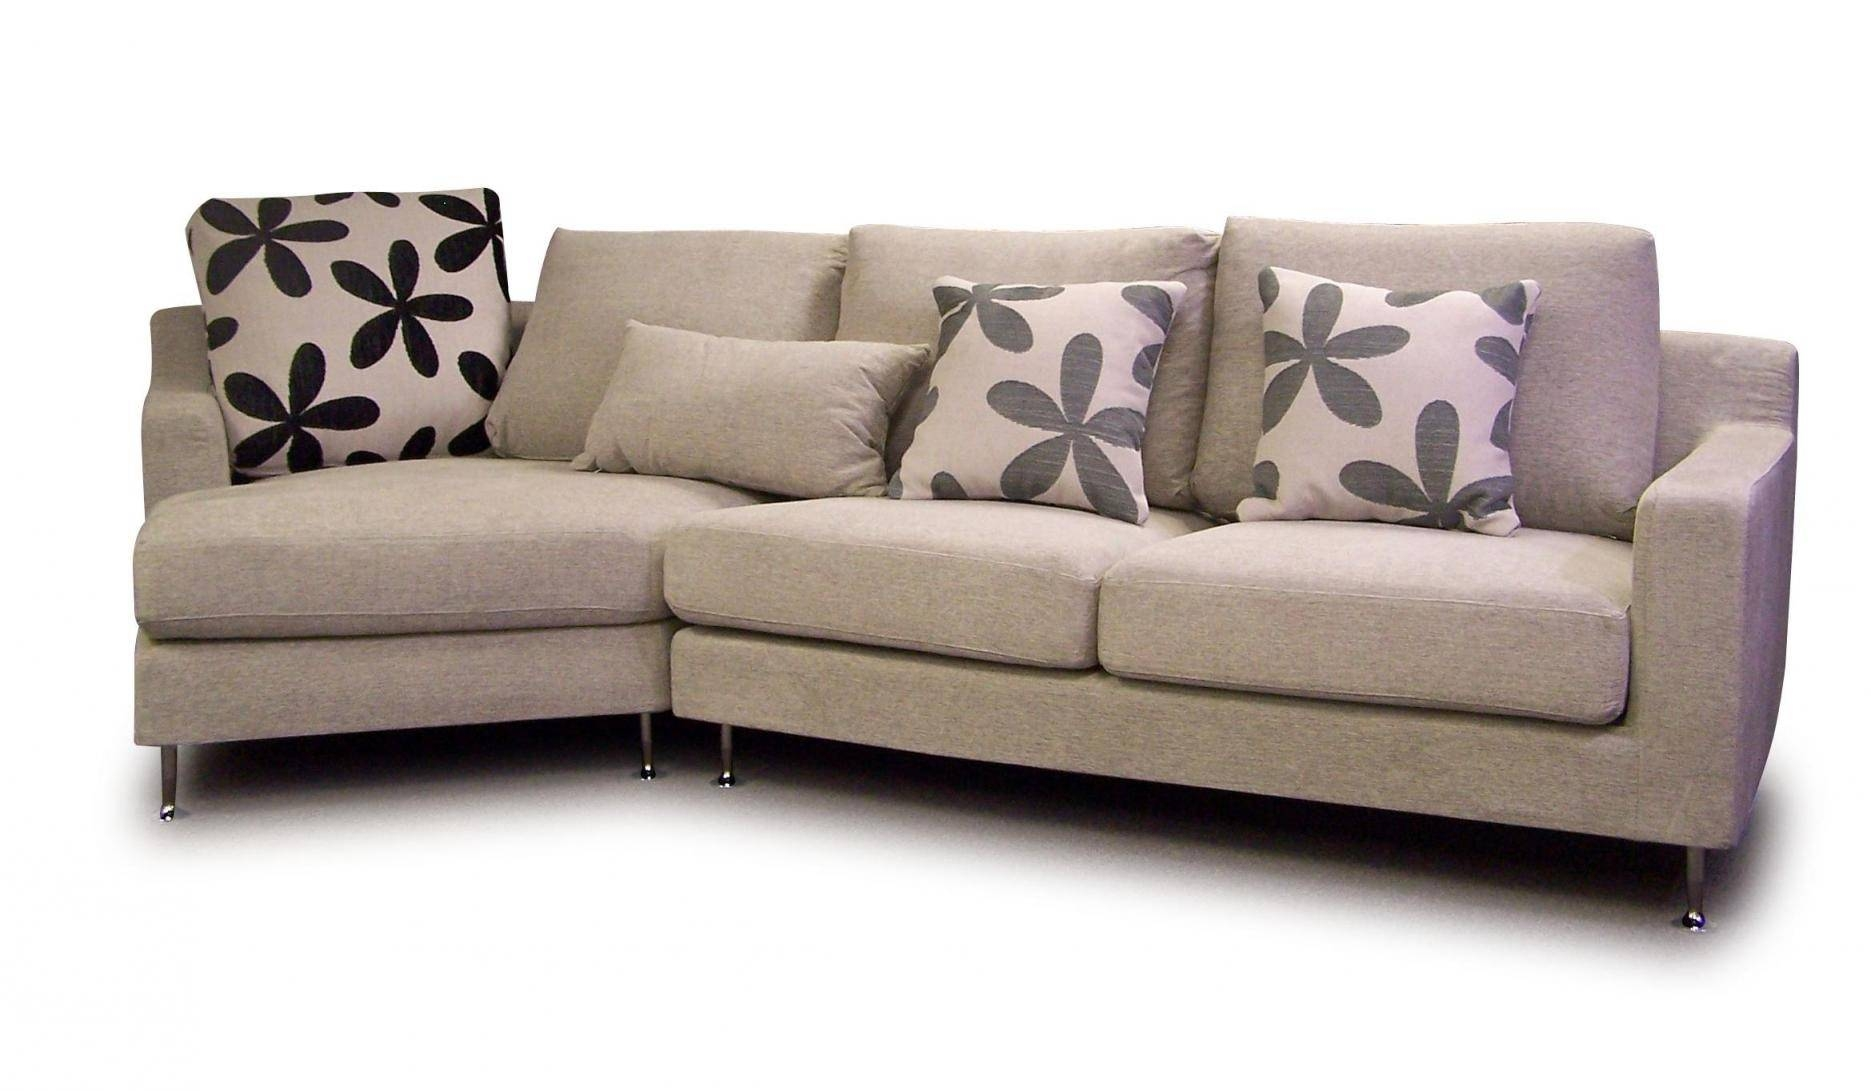 Sofa : Cool Sofas For Cheap Sale Home Design Furniture Decorating intended for Cool Cheap Sofas (Image 24 of 30)